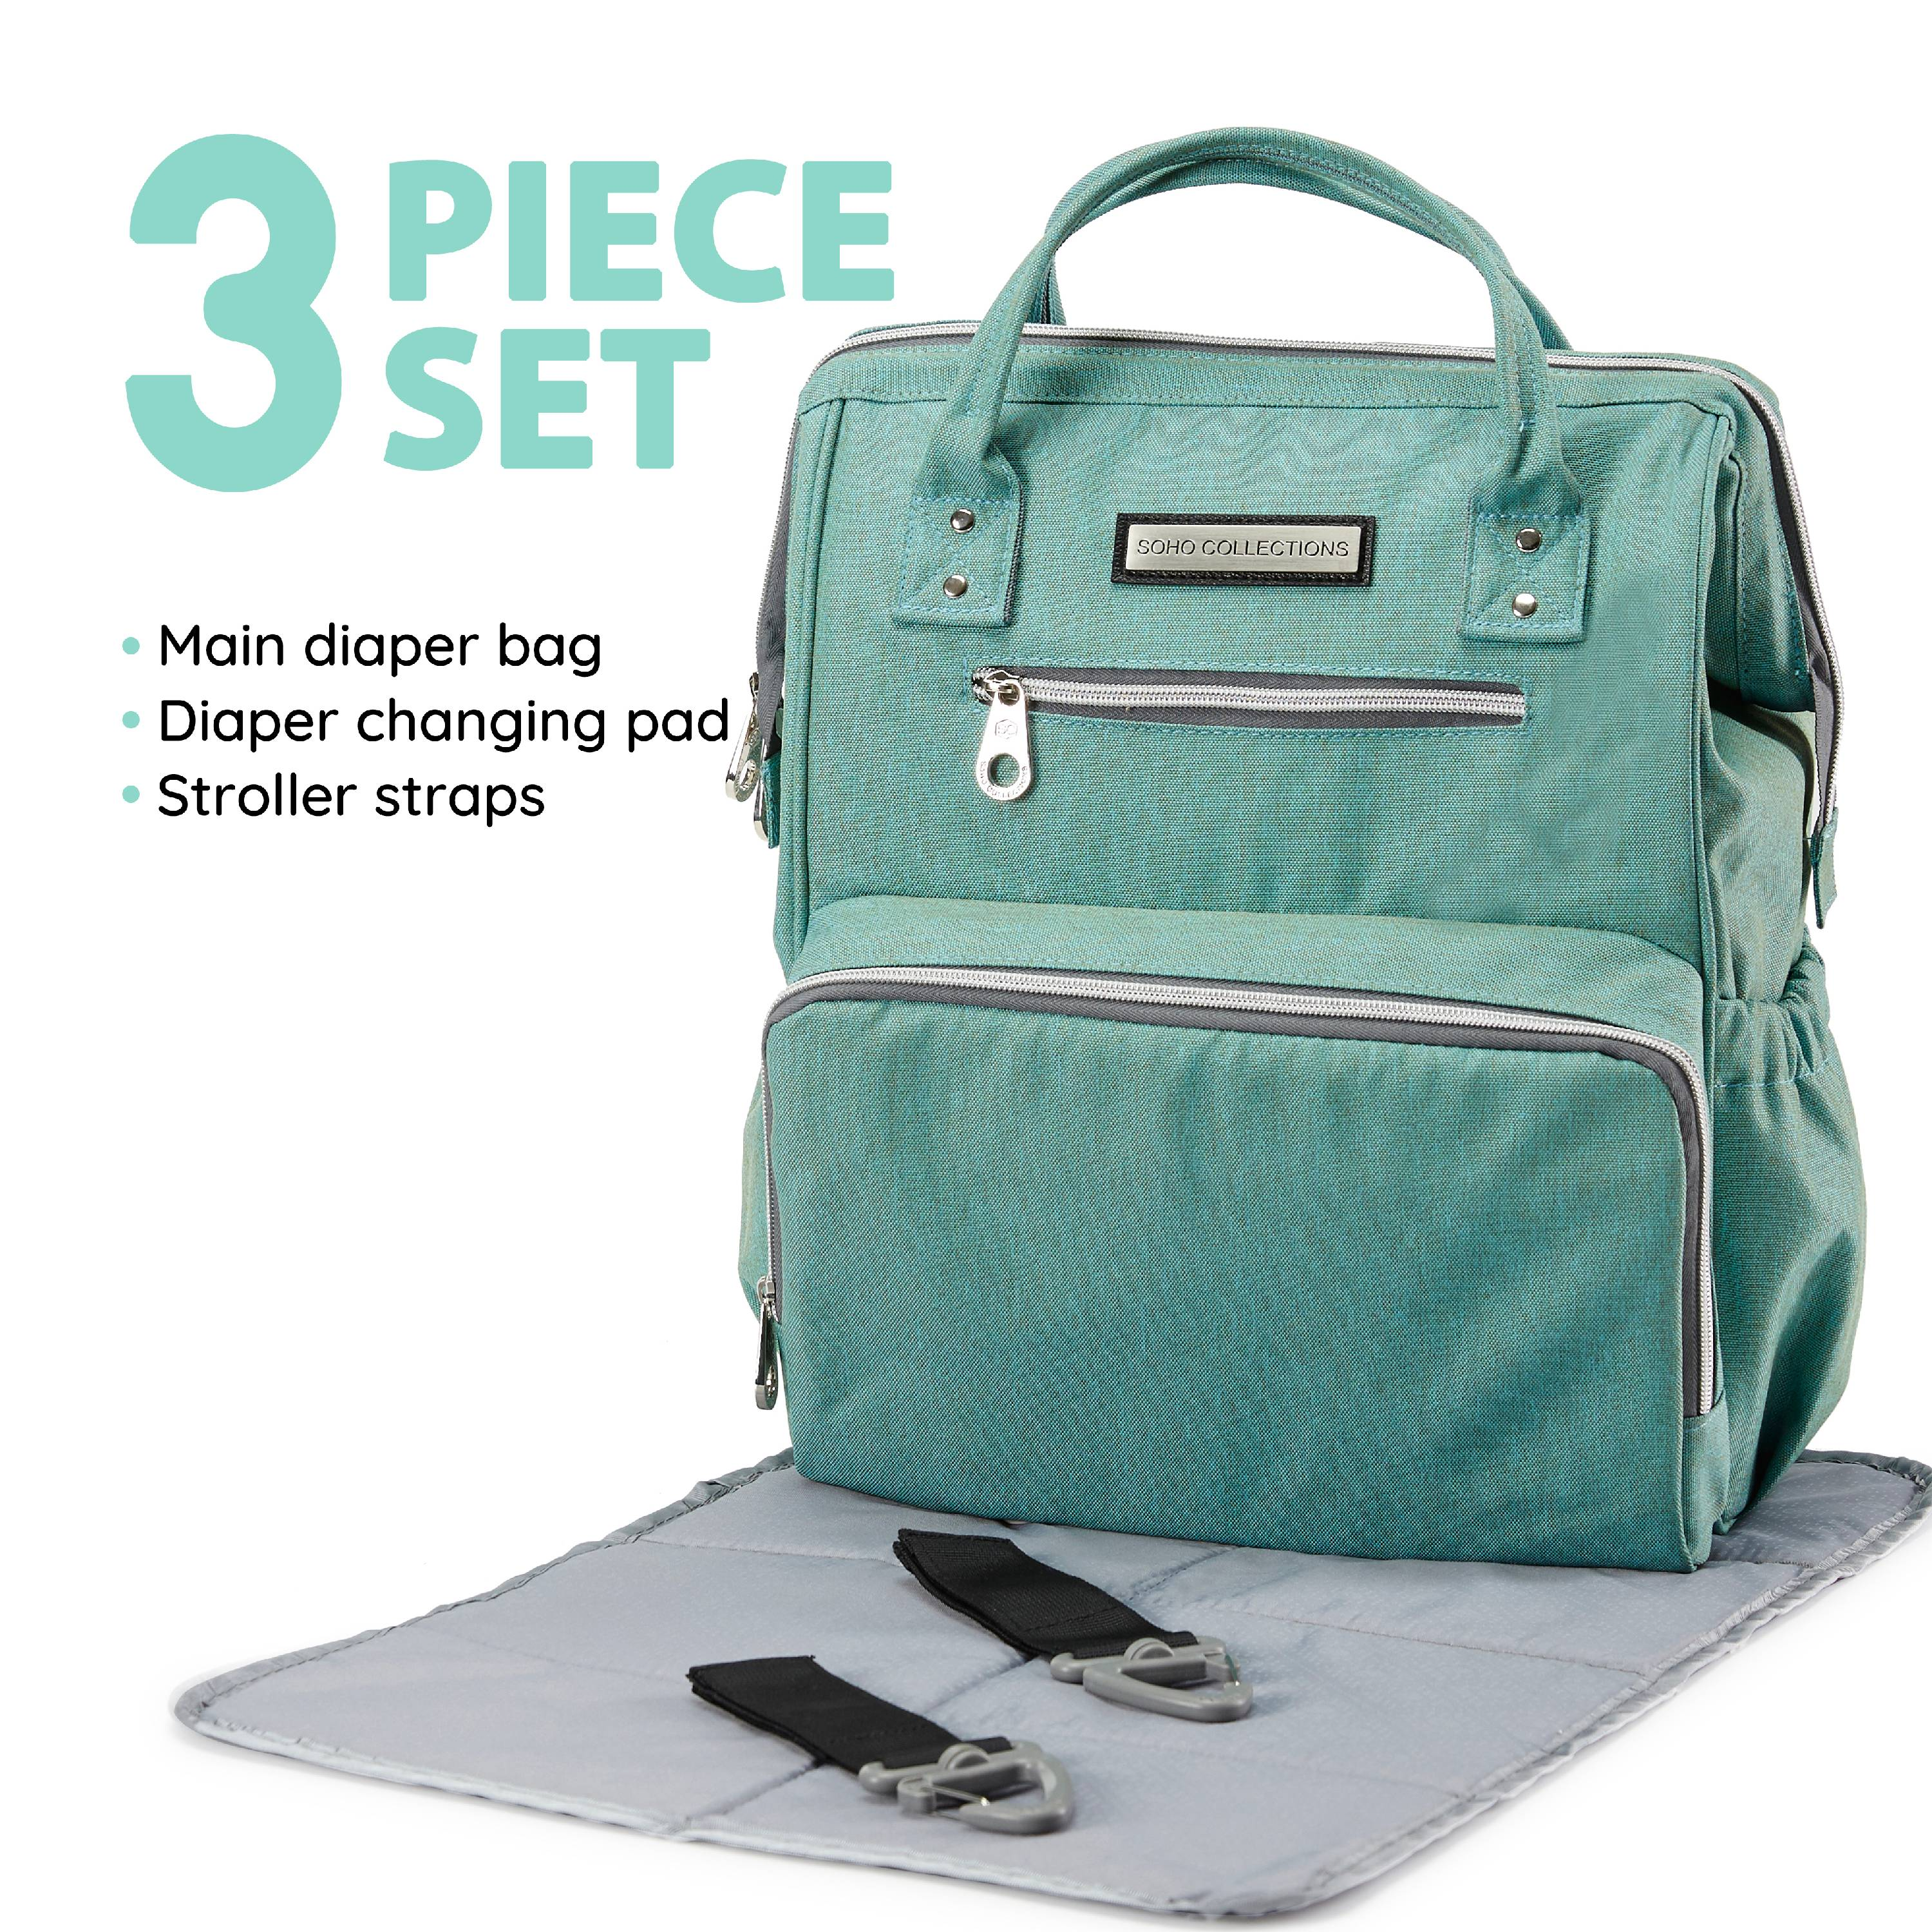 SoHo Collections, Wide Opening Unisex Diaper Bag Tote Backpack with Stroller Straps, 3 Piece Set (Apple Green)